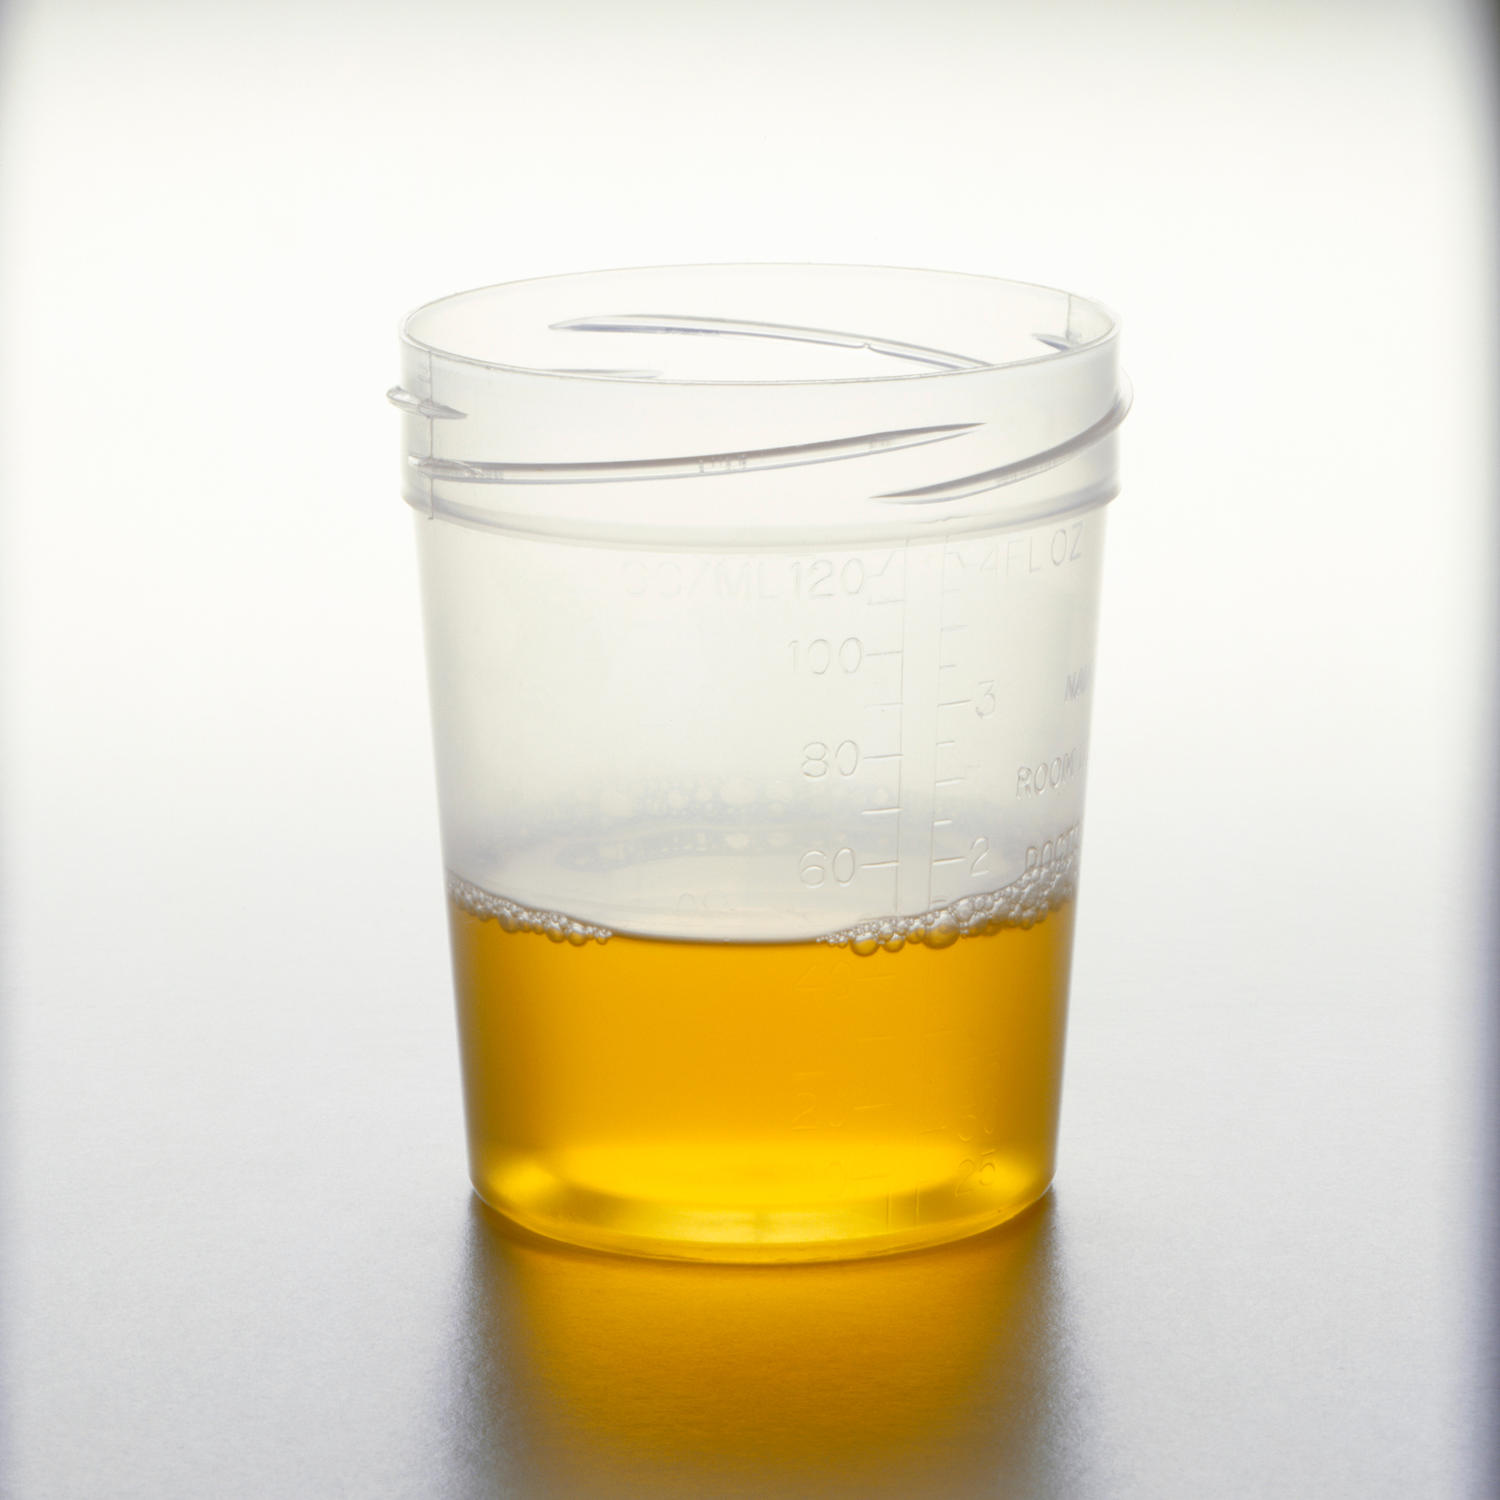 Clinical urine tests